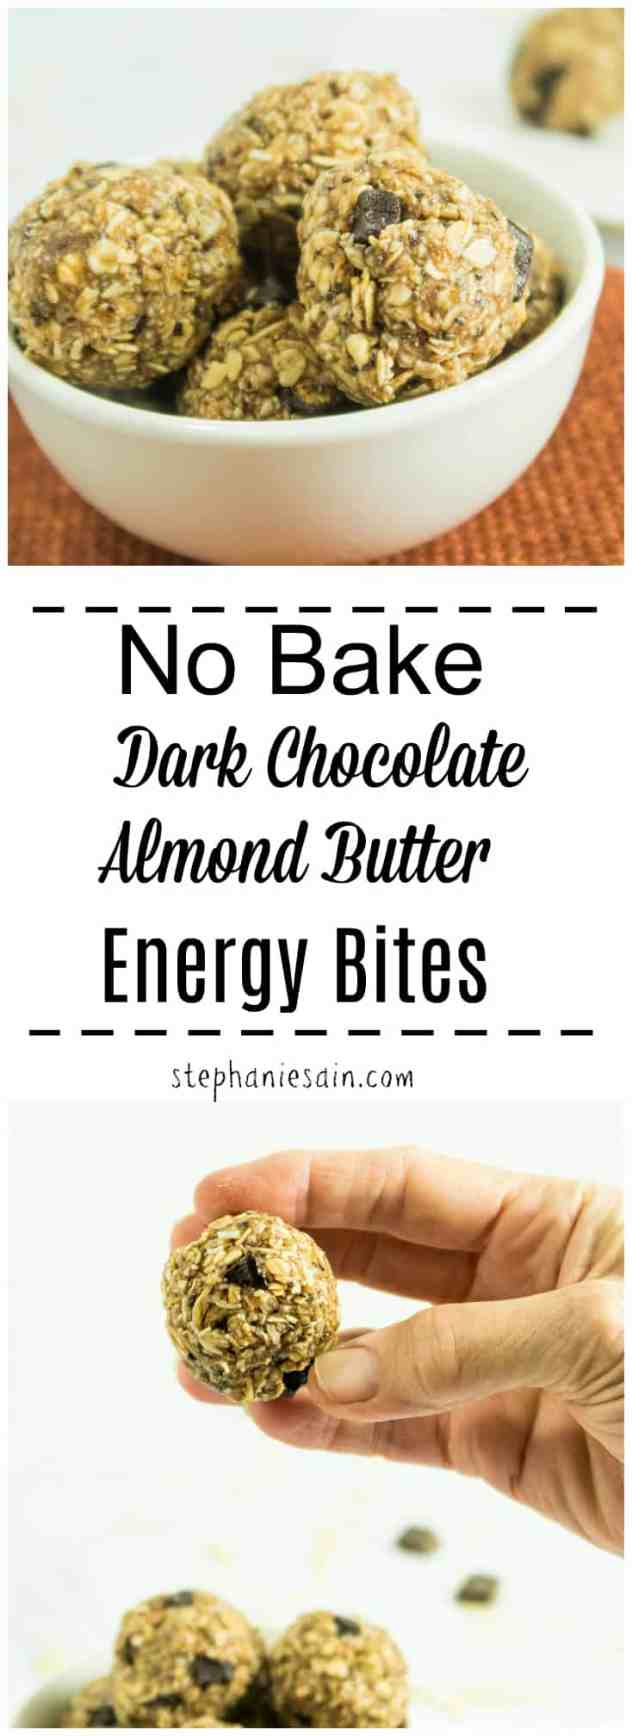 No Bake Dark Chocolate Almond Butter Energy Bites are the perfect, tasty, little portable snack. Less than 10 ingredients required and made in one bowl. Both Vegan & Gluten Free.